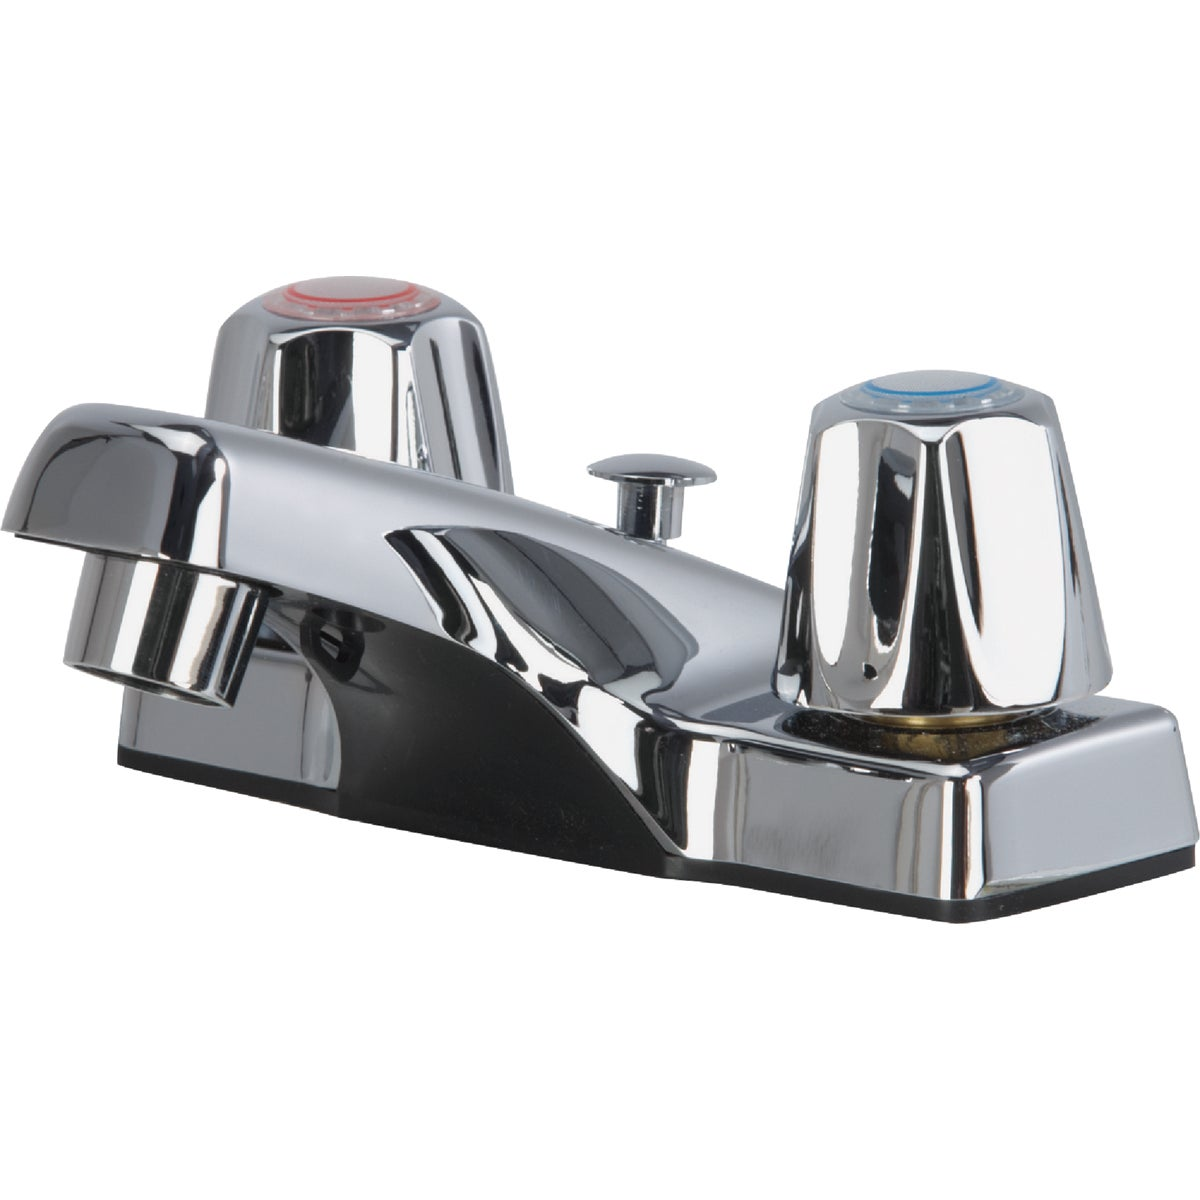 CHR LAV FAUCET W/POP UP - F40K1403CP-JPA3 by Globe Union